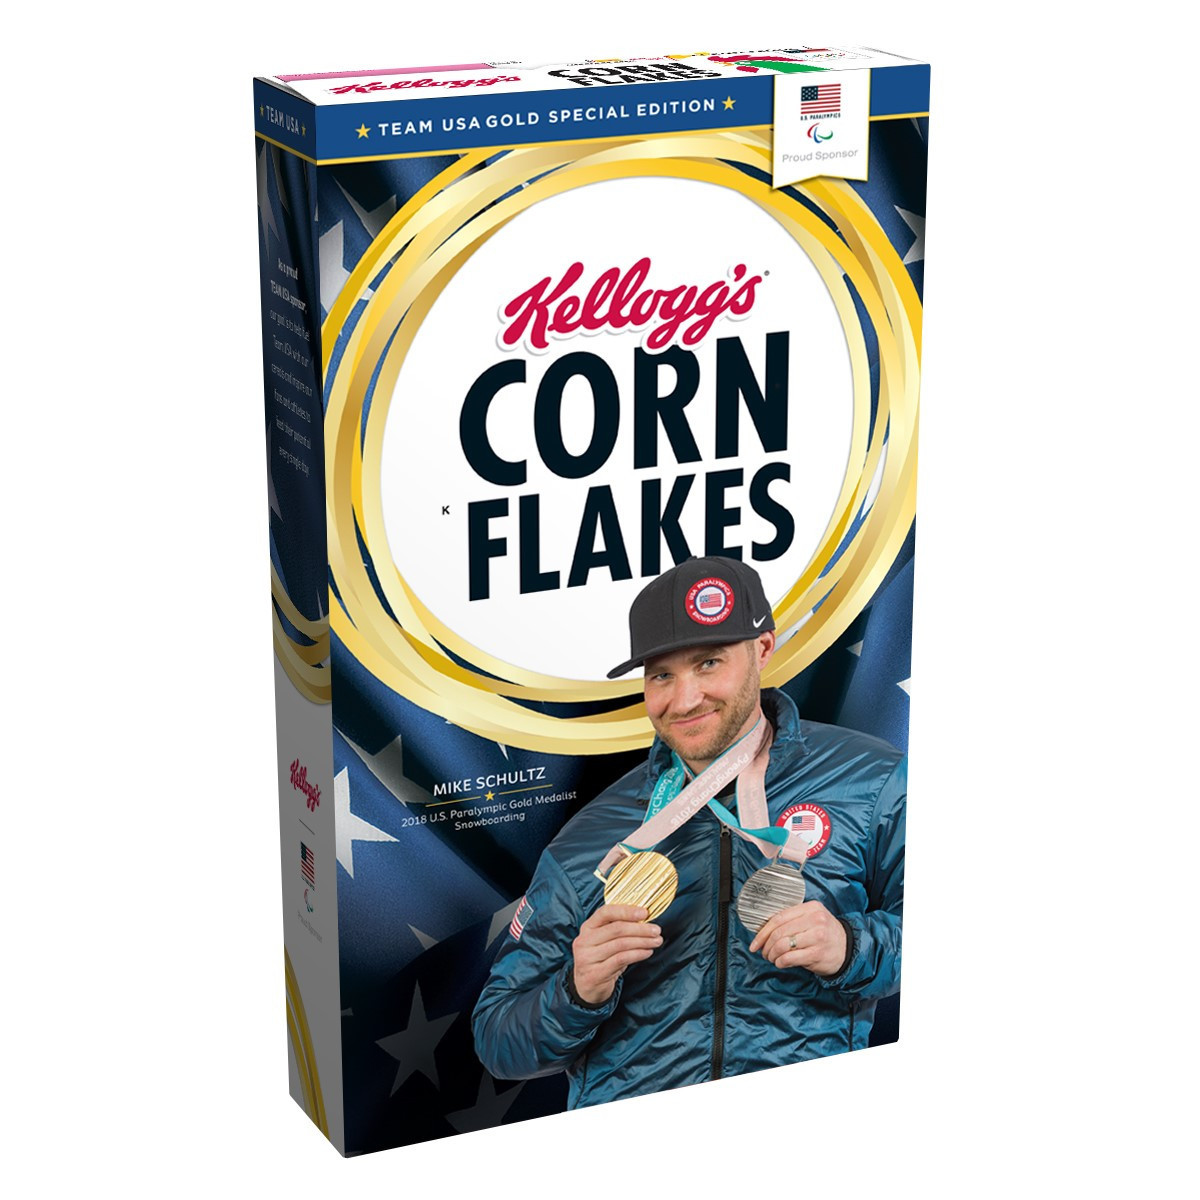 Pyeongchang 2018 champion Schultz to become first US Paralympian to feature on gold medal edition box of Kellogg's Corn Flakes